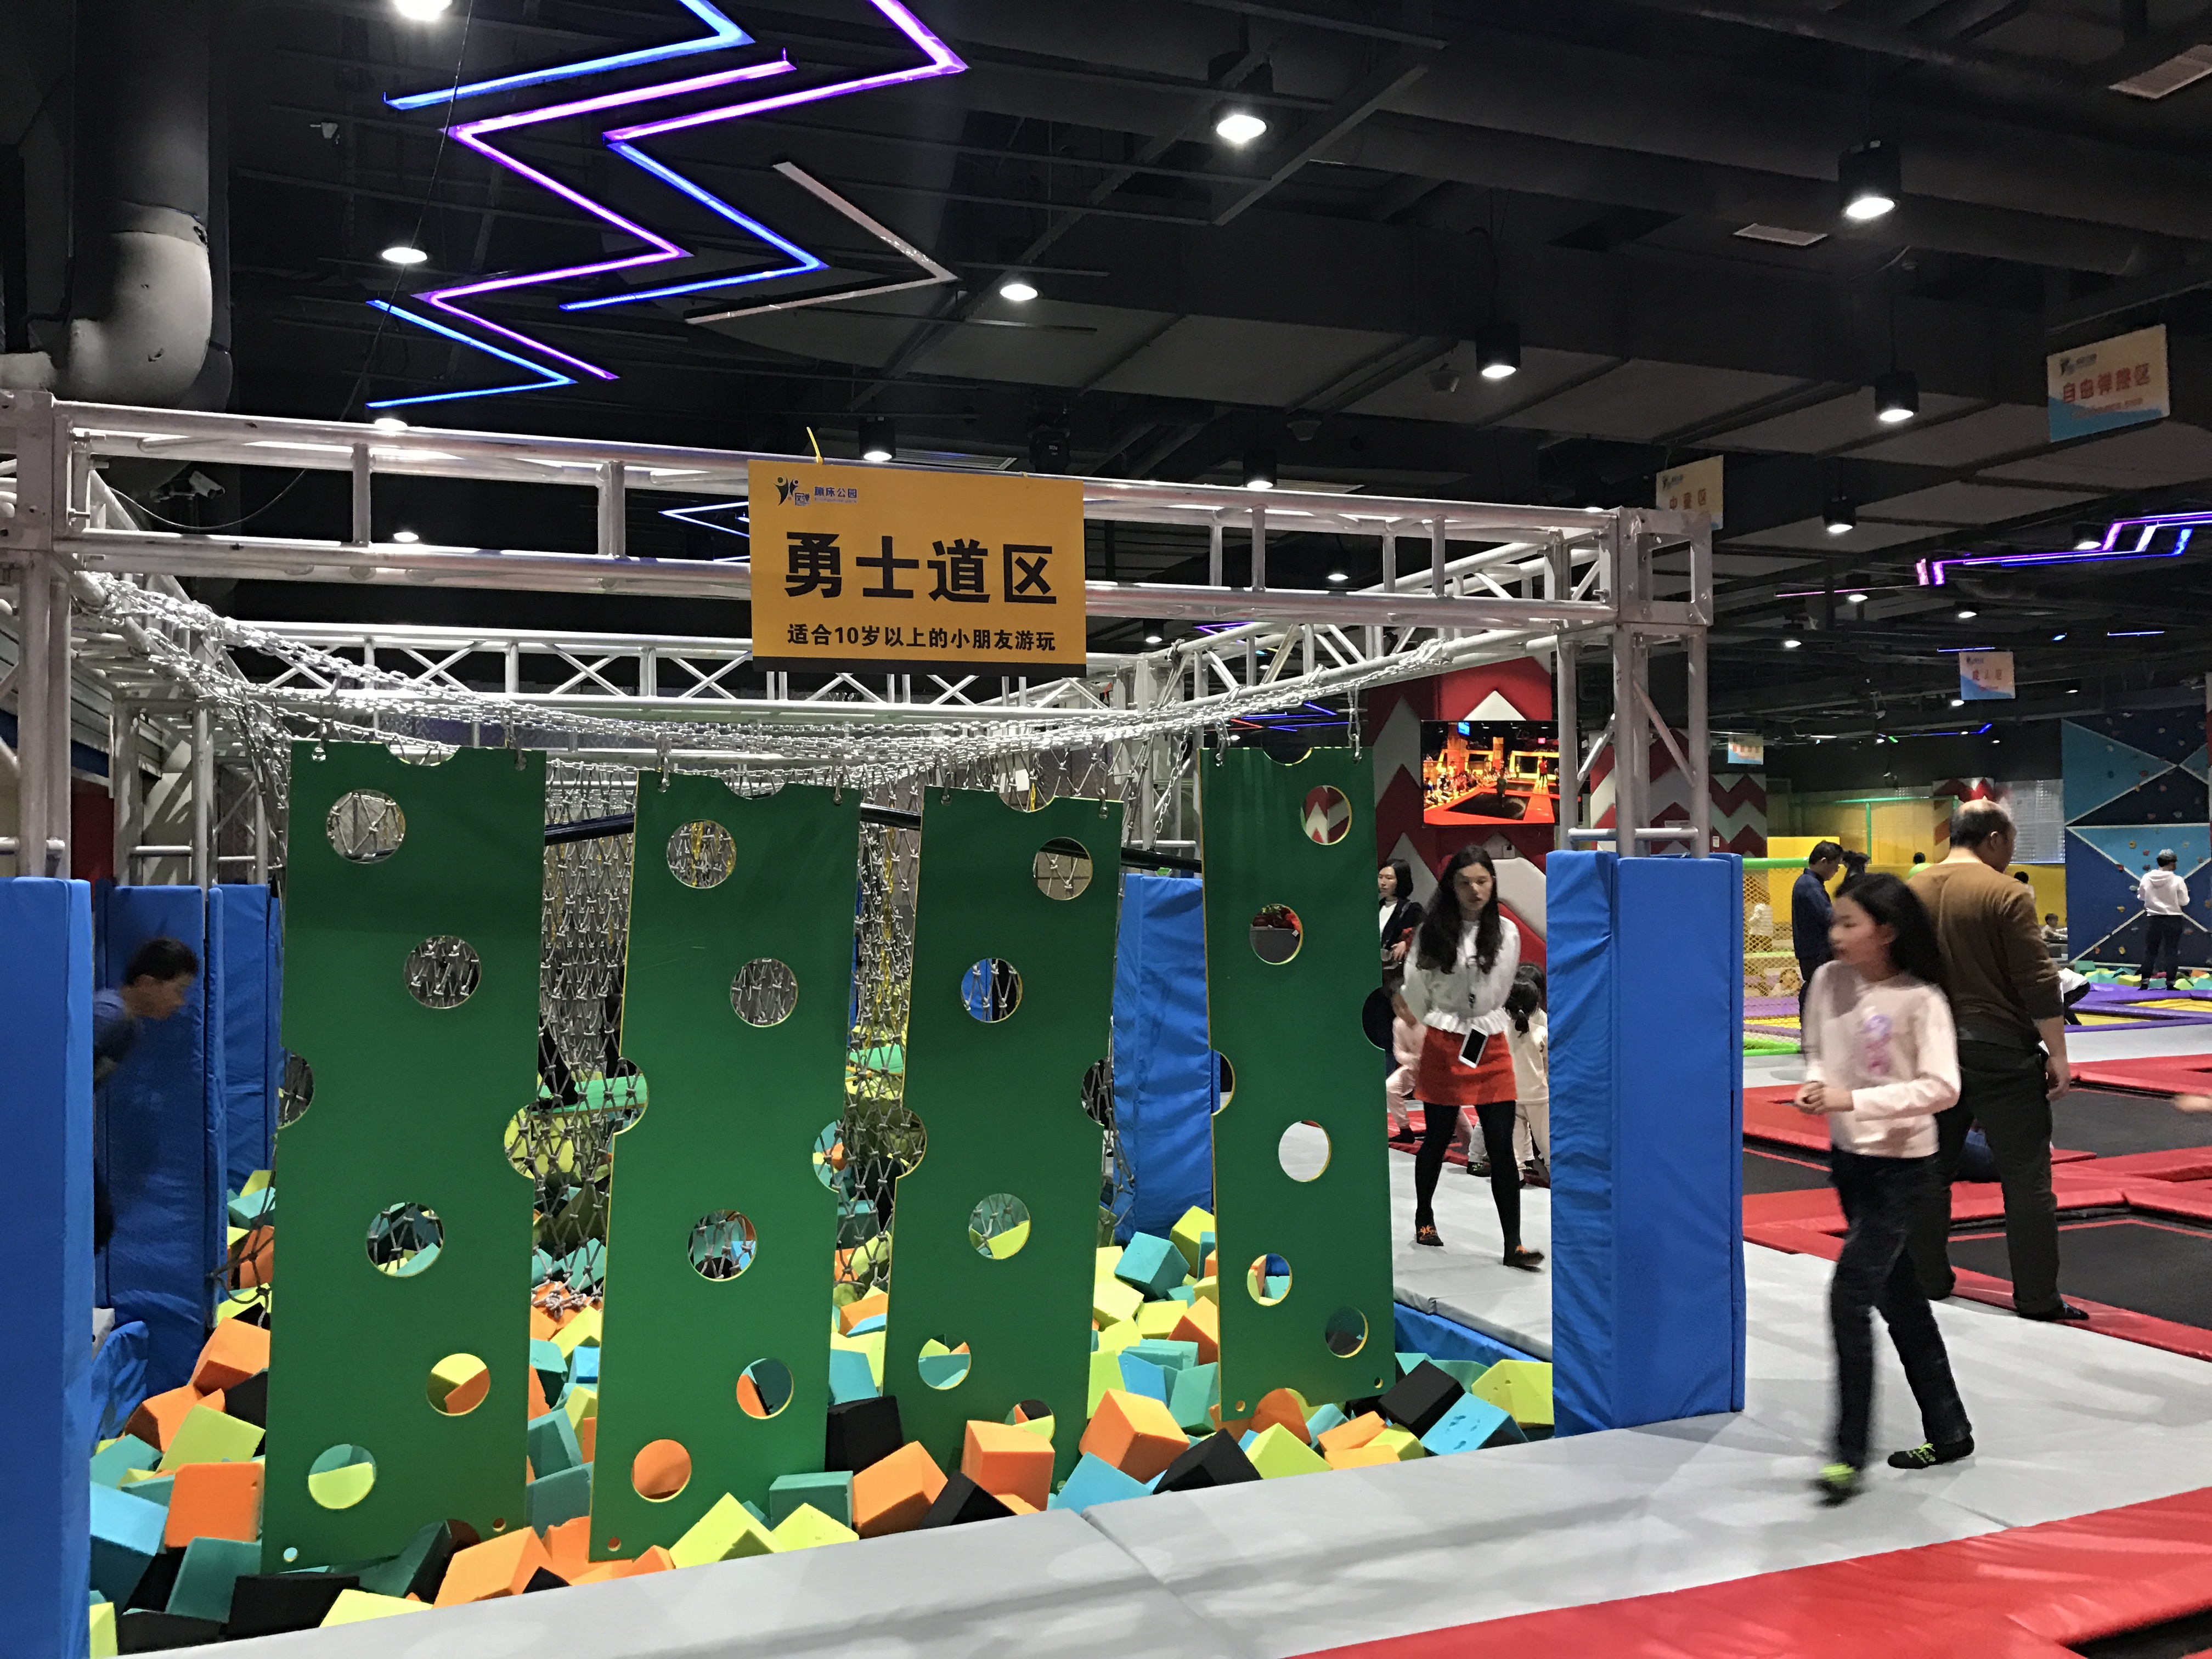 Precautions for playing climbing wall